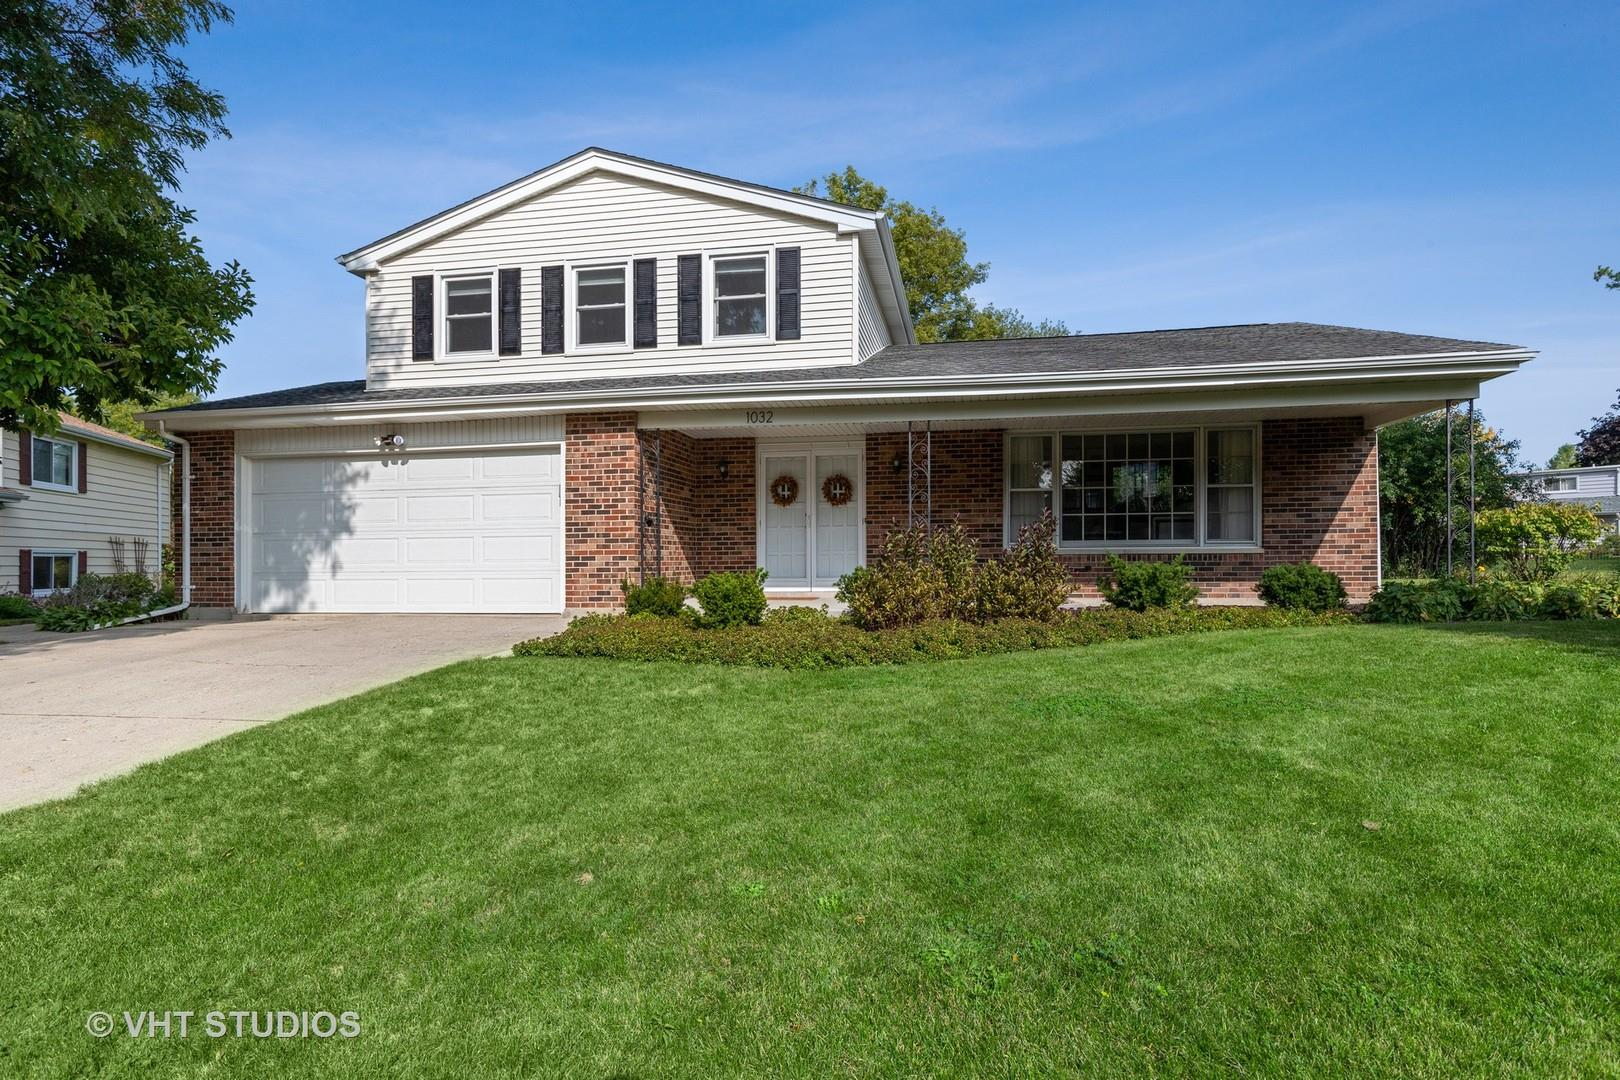 1032 Crabtree Lane, Libertyville, IL 60048 - #: 10862758